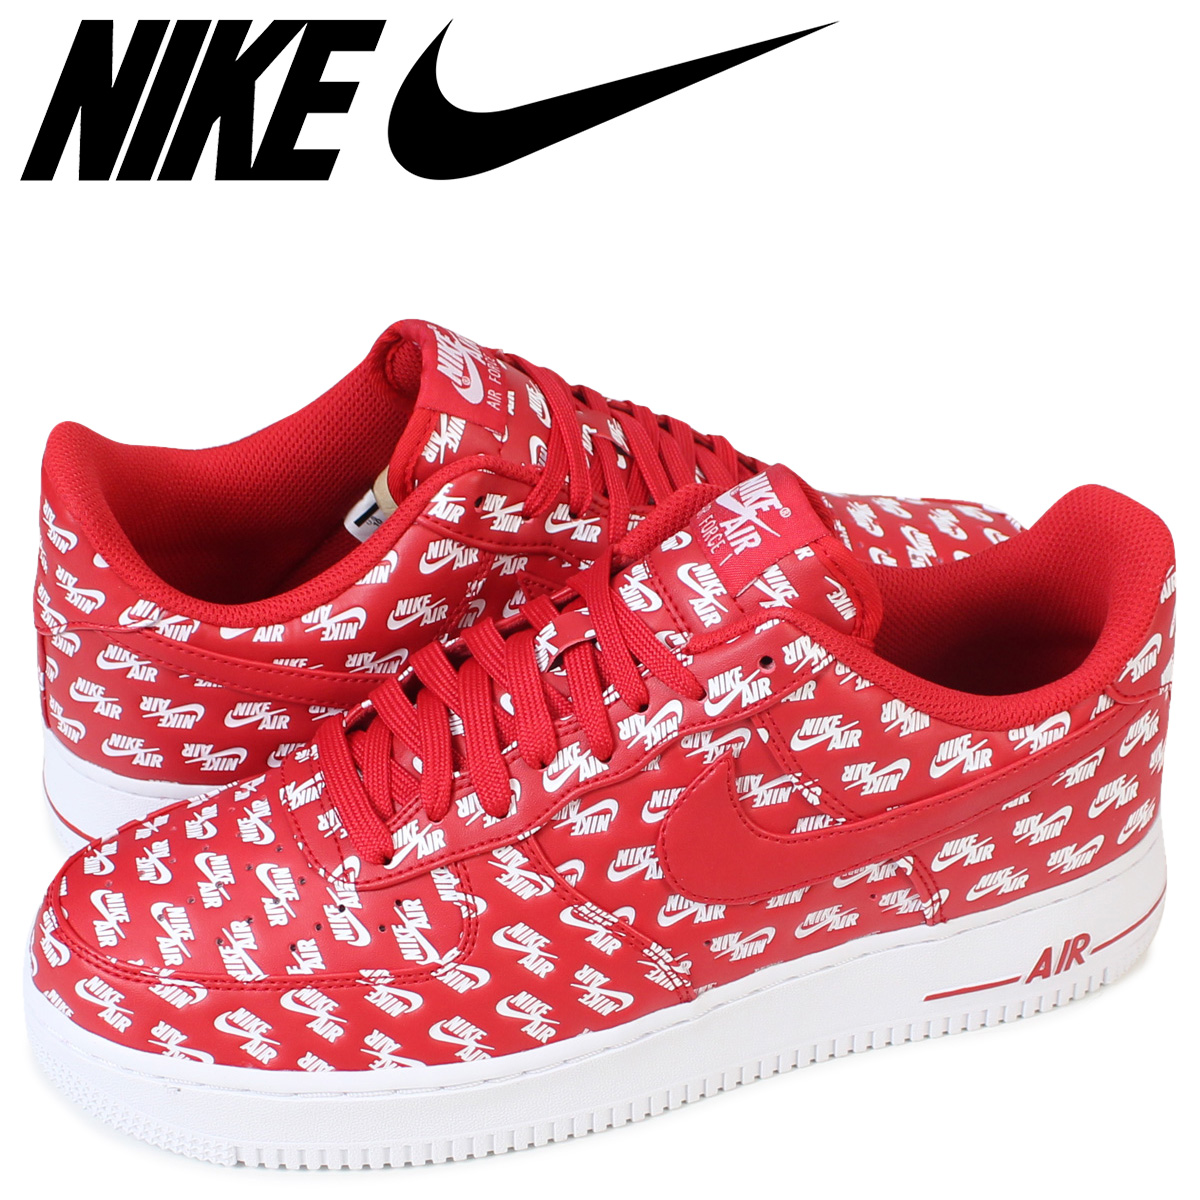 NIKE Nike air force 1 sneakers AIR FORCE 1 ALL OVER LOGO AH8462 600 low men shoes red